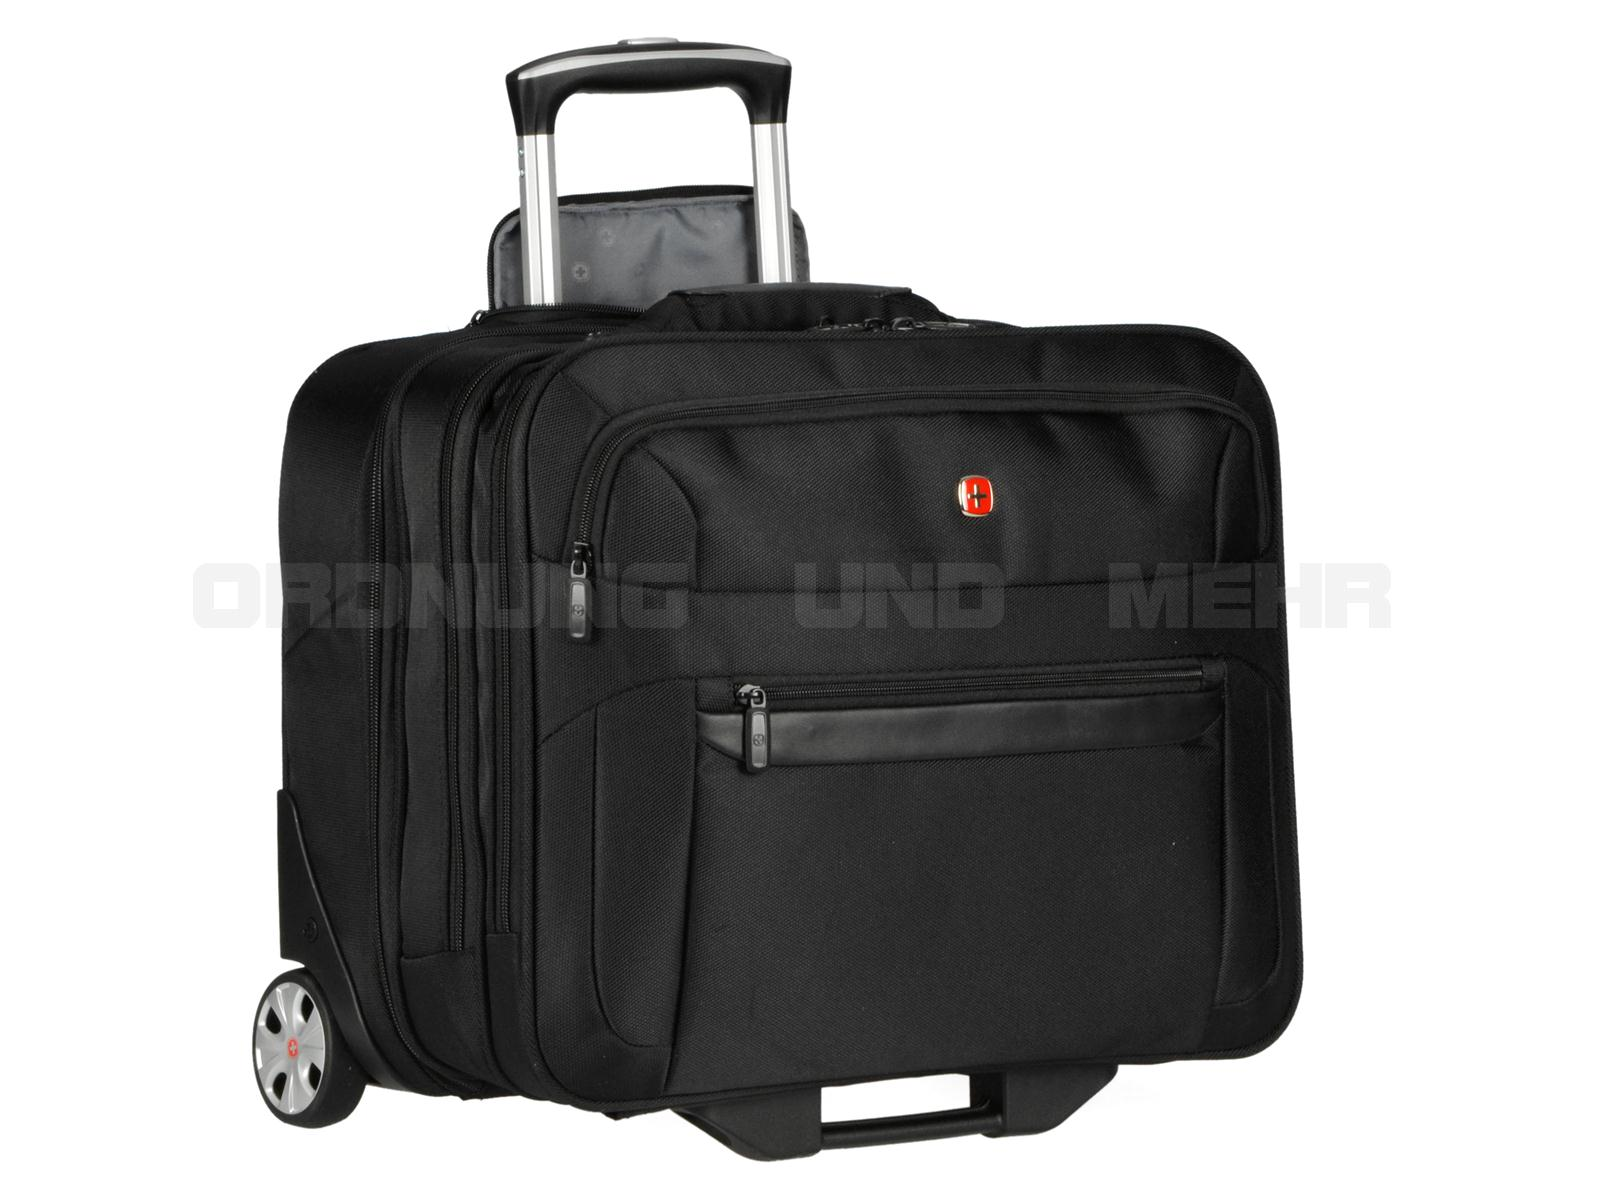 17 Zoll Notebooktasche als Businesstrolley von WENGER W7301-2295